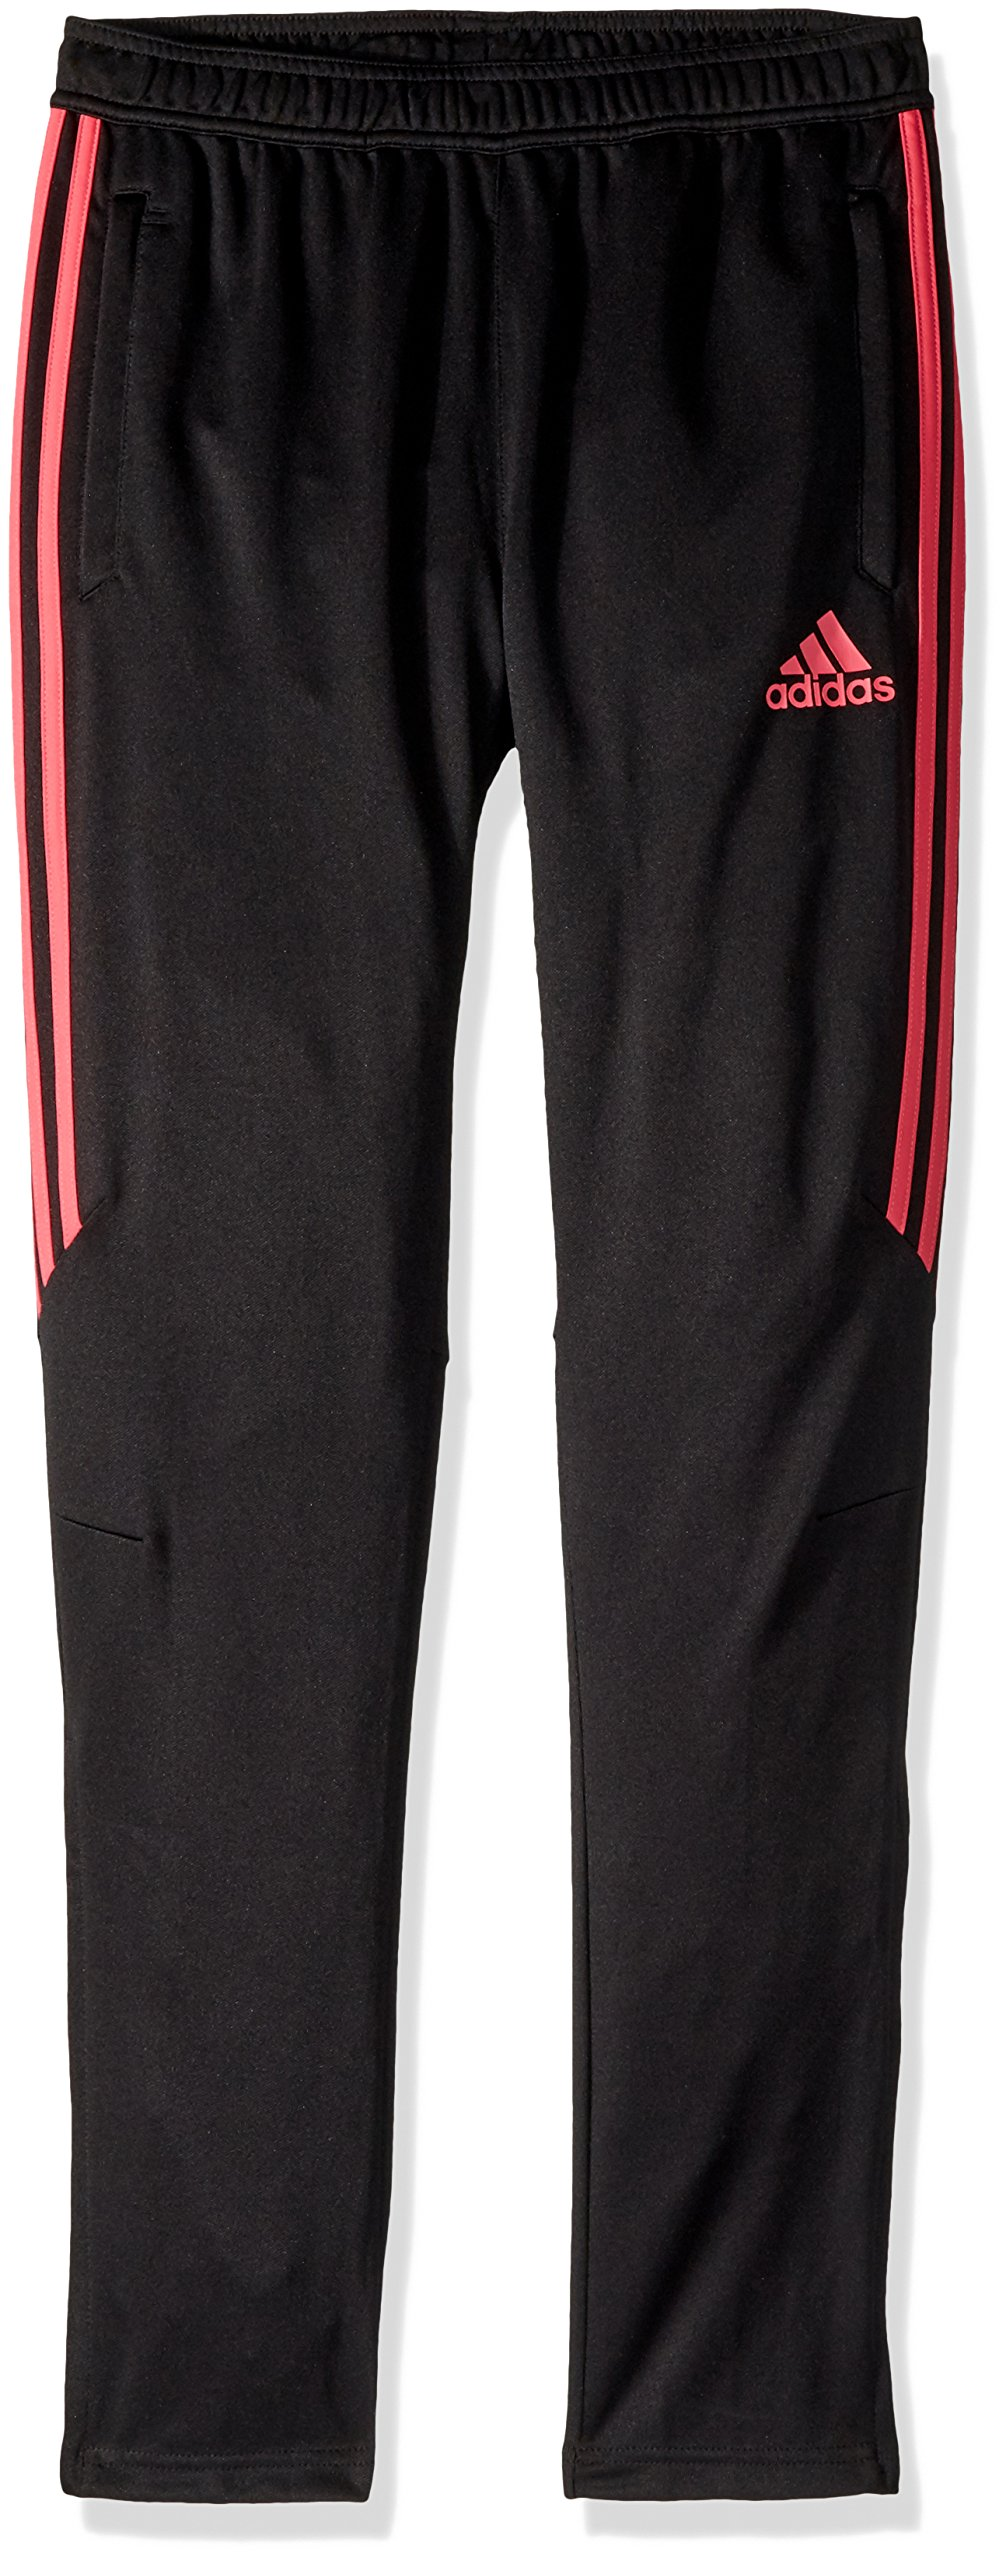 adidas Youth Soccer Tiro 17 Training Pants, Black/Real Pink, Small